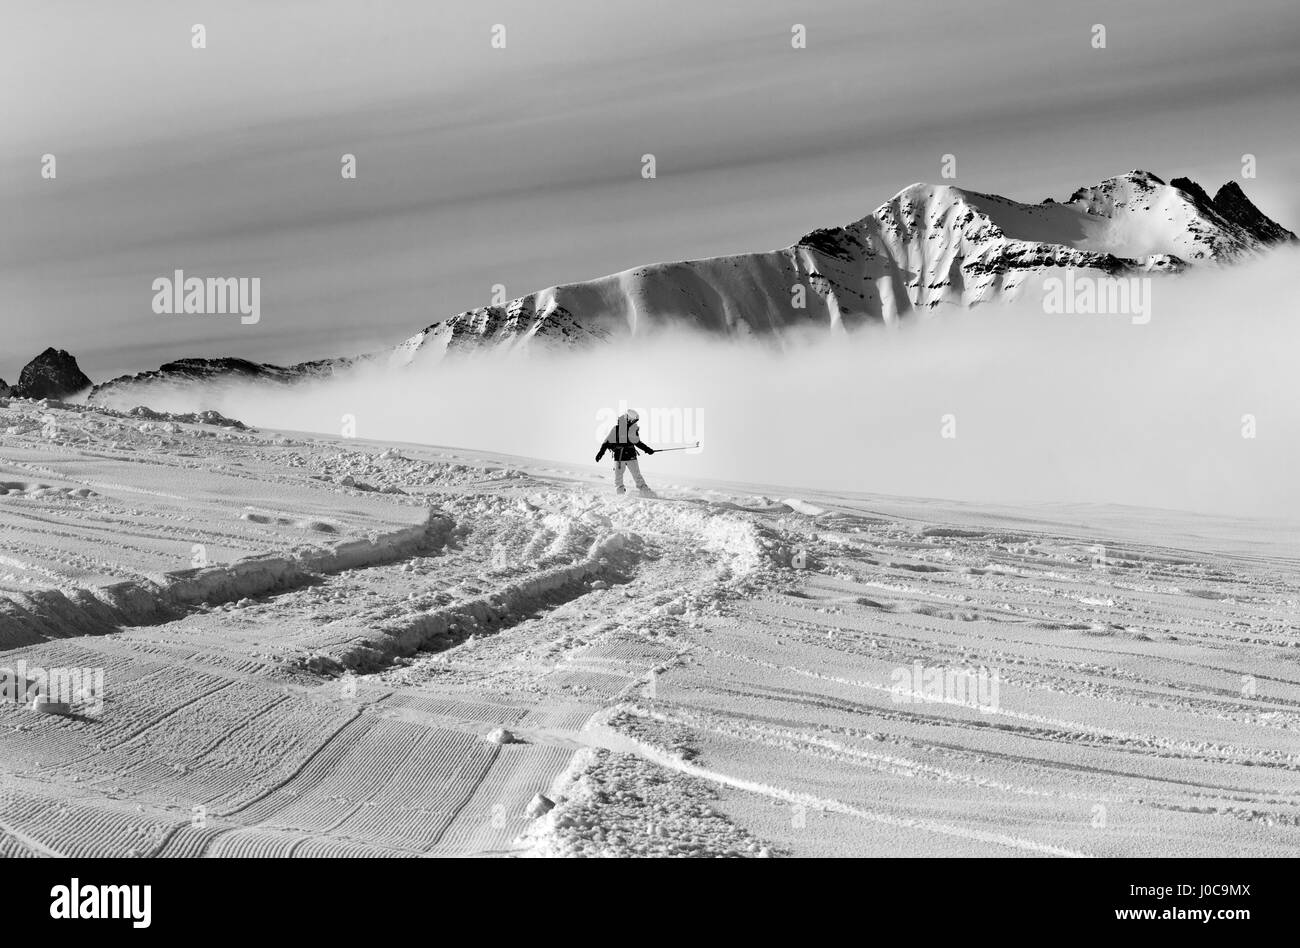 Snowboarder downhill on off-piste slope with newly-fallen snow. Region Gudauri, Caucasus Mountains, Georgia. Black - Stock Image